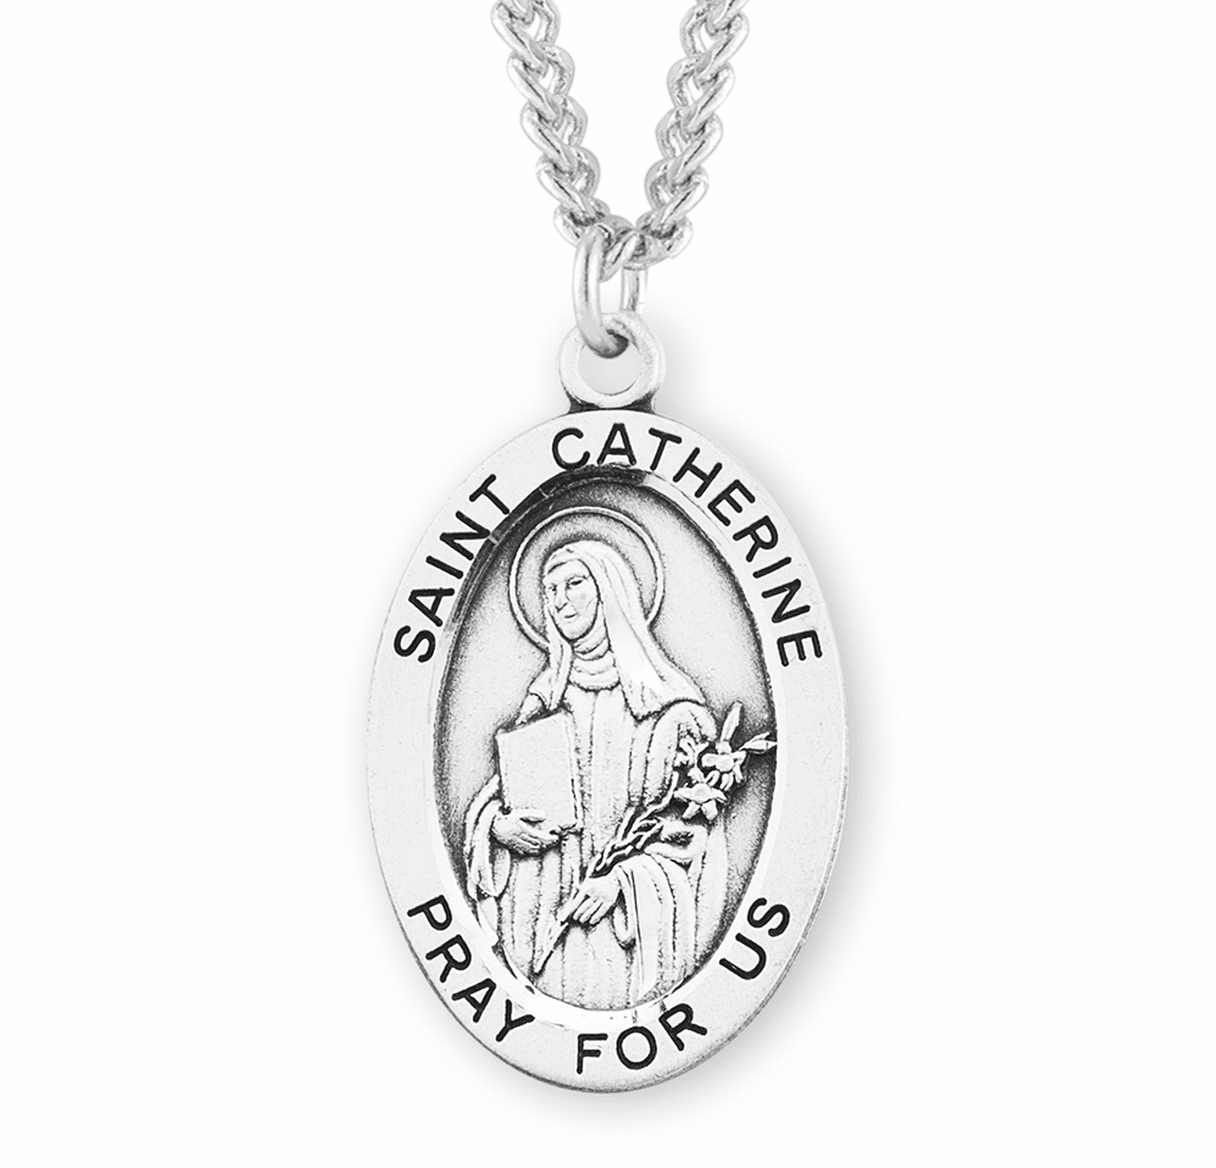 St Catherine of Siena Large Sterling Silver Patron Saint Medal Necklace w/Chain by HMH Religious